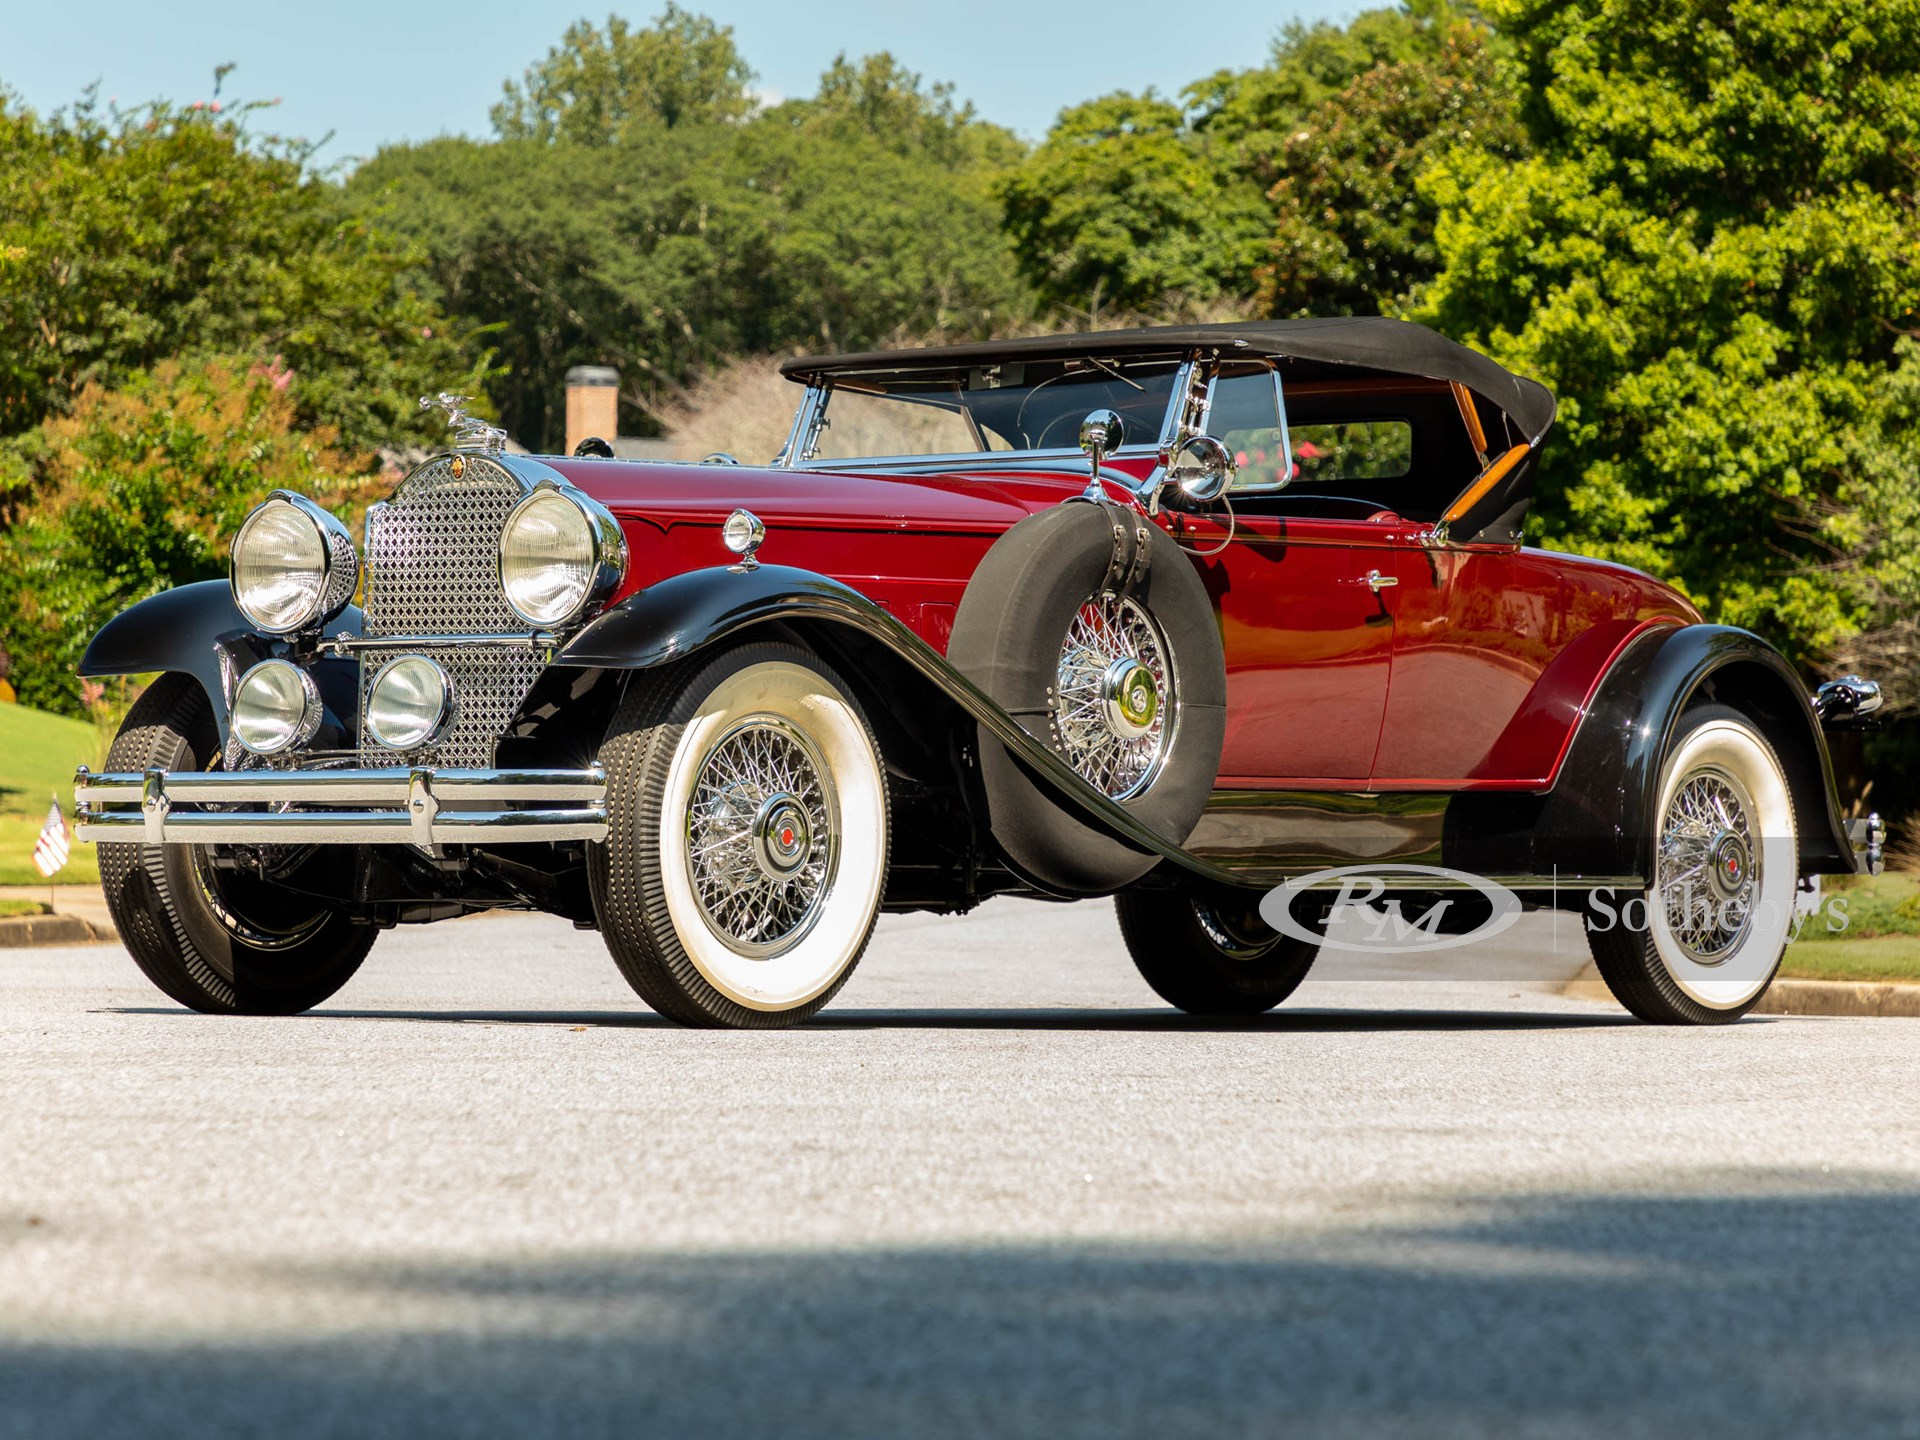 1930 Packard 745 Deluxe Eight Roadster by LeBaron (Alex Stewart ©2021 Courtesy of RM Sotheby's)